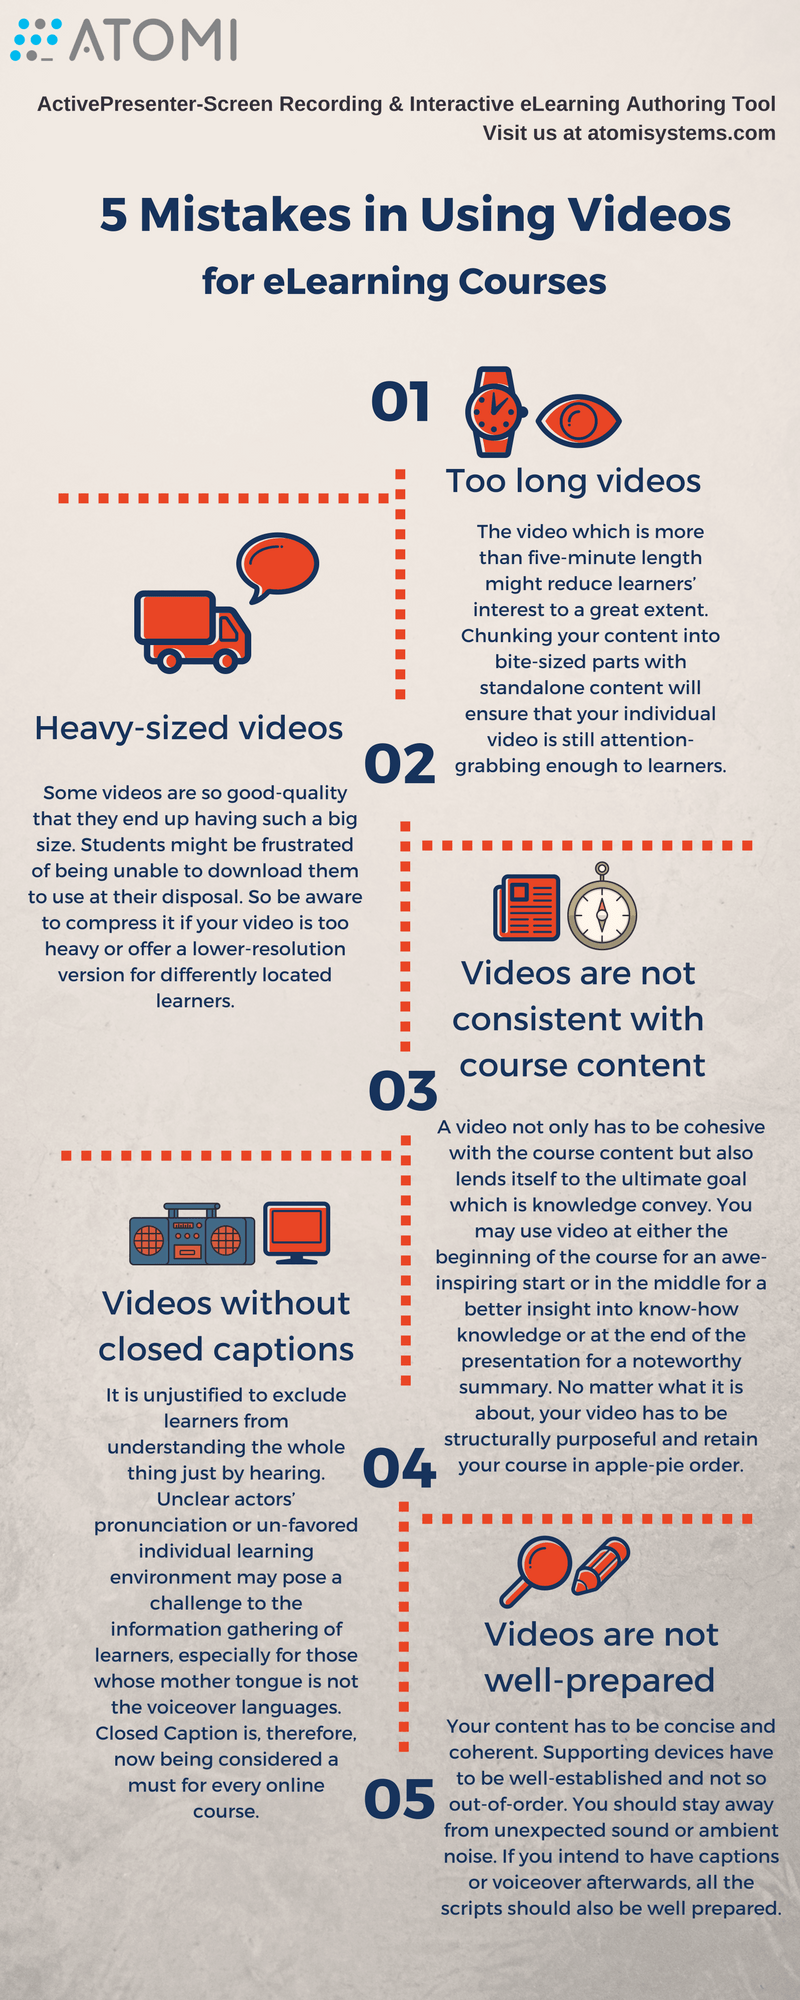 5 Mistakes in Video eLearning thumbnail